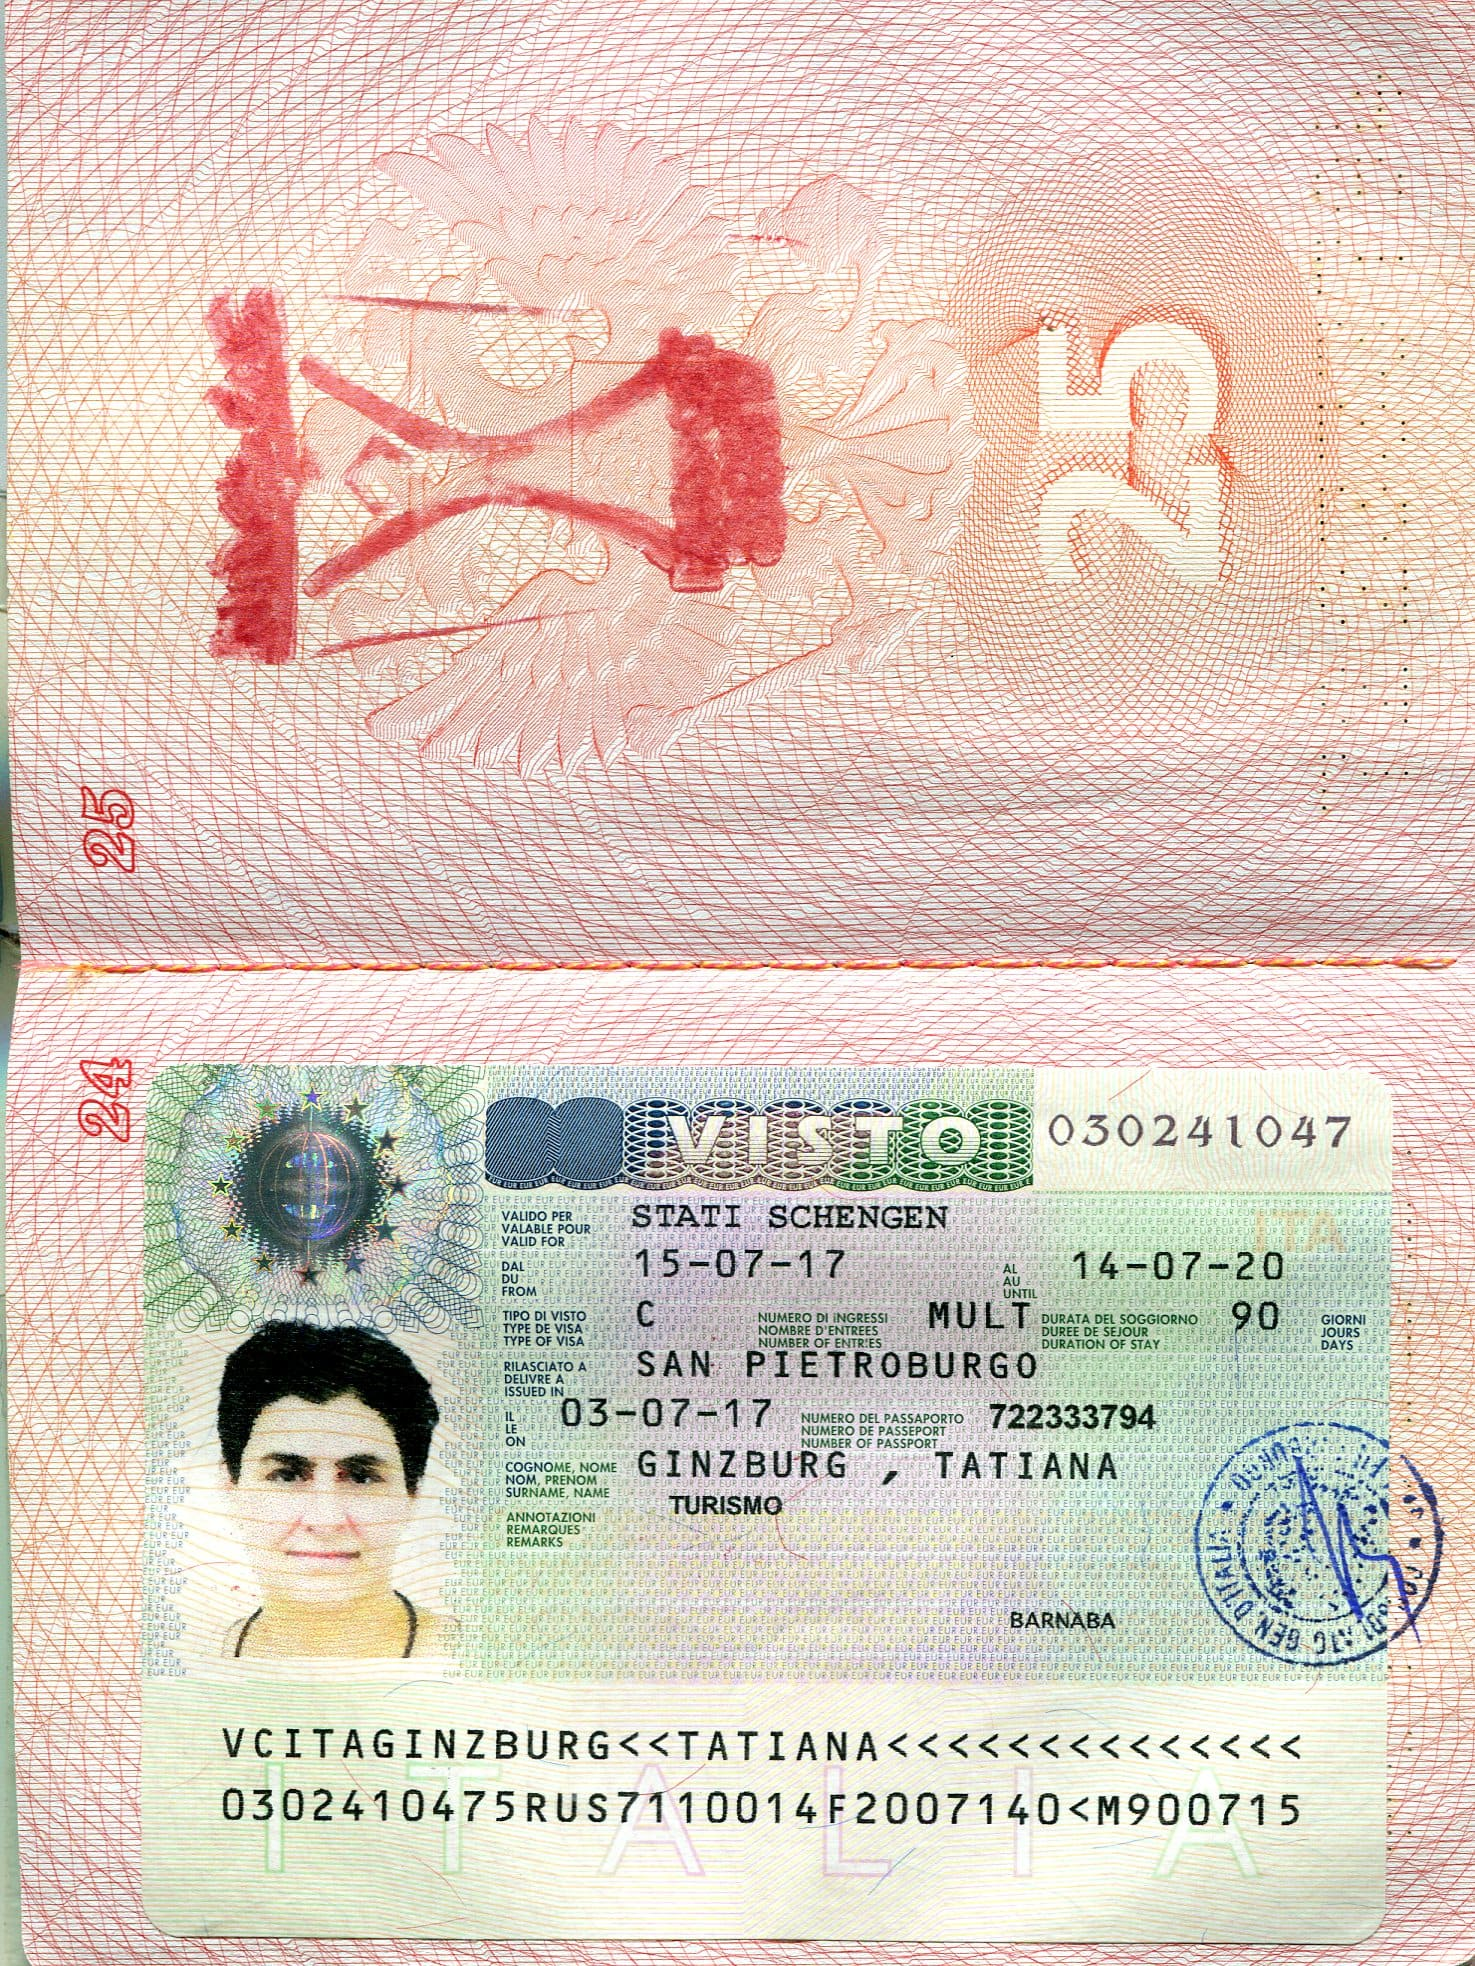 Schengen visa photo nyc Order 6 passport photos online for 7 for ANY country